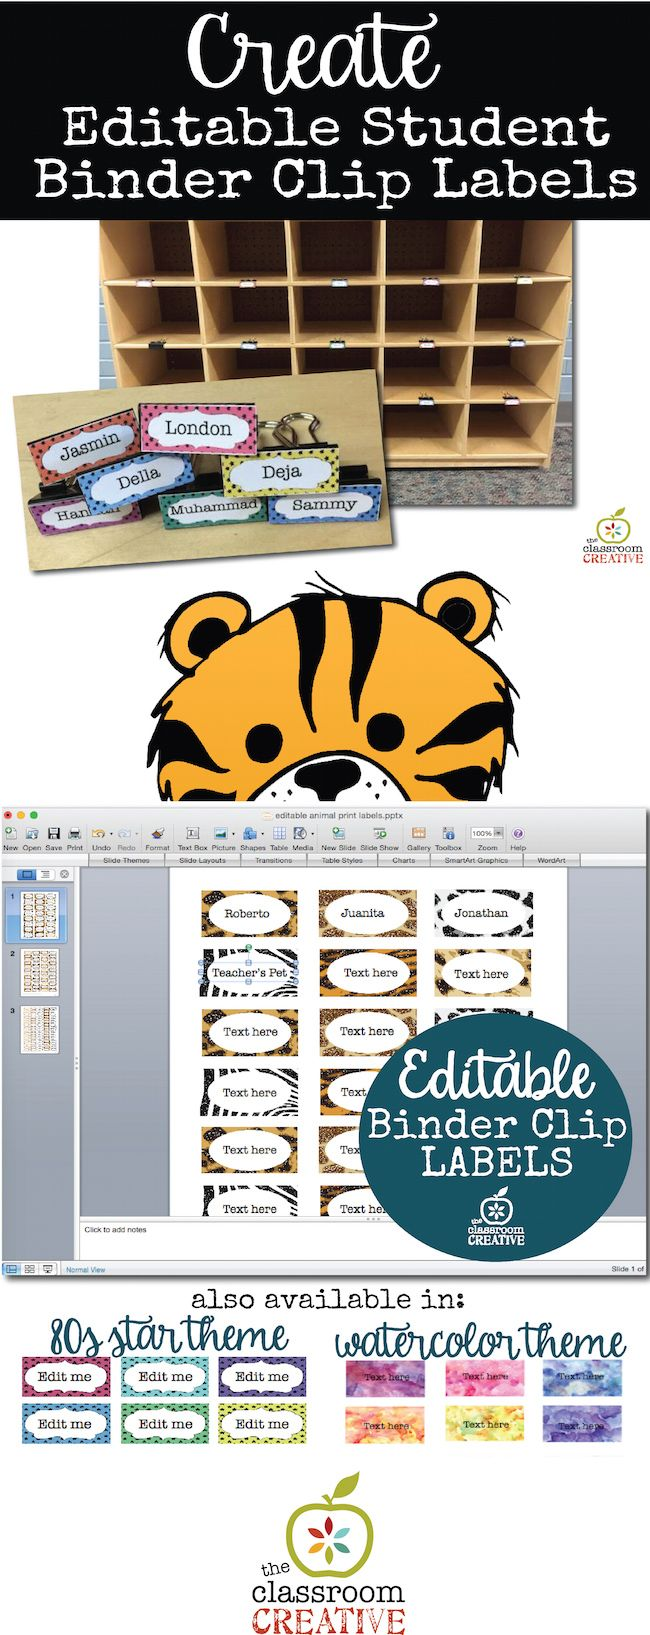 If you have student cubbies or mailboxes, editable binder clip labels are a must-have.   #backtoschool #classroomorganization #labels #binderclips #teachers